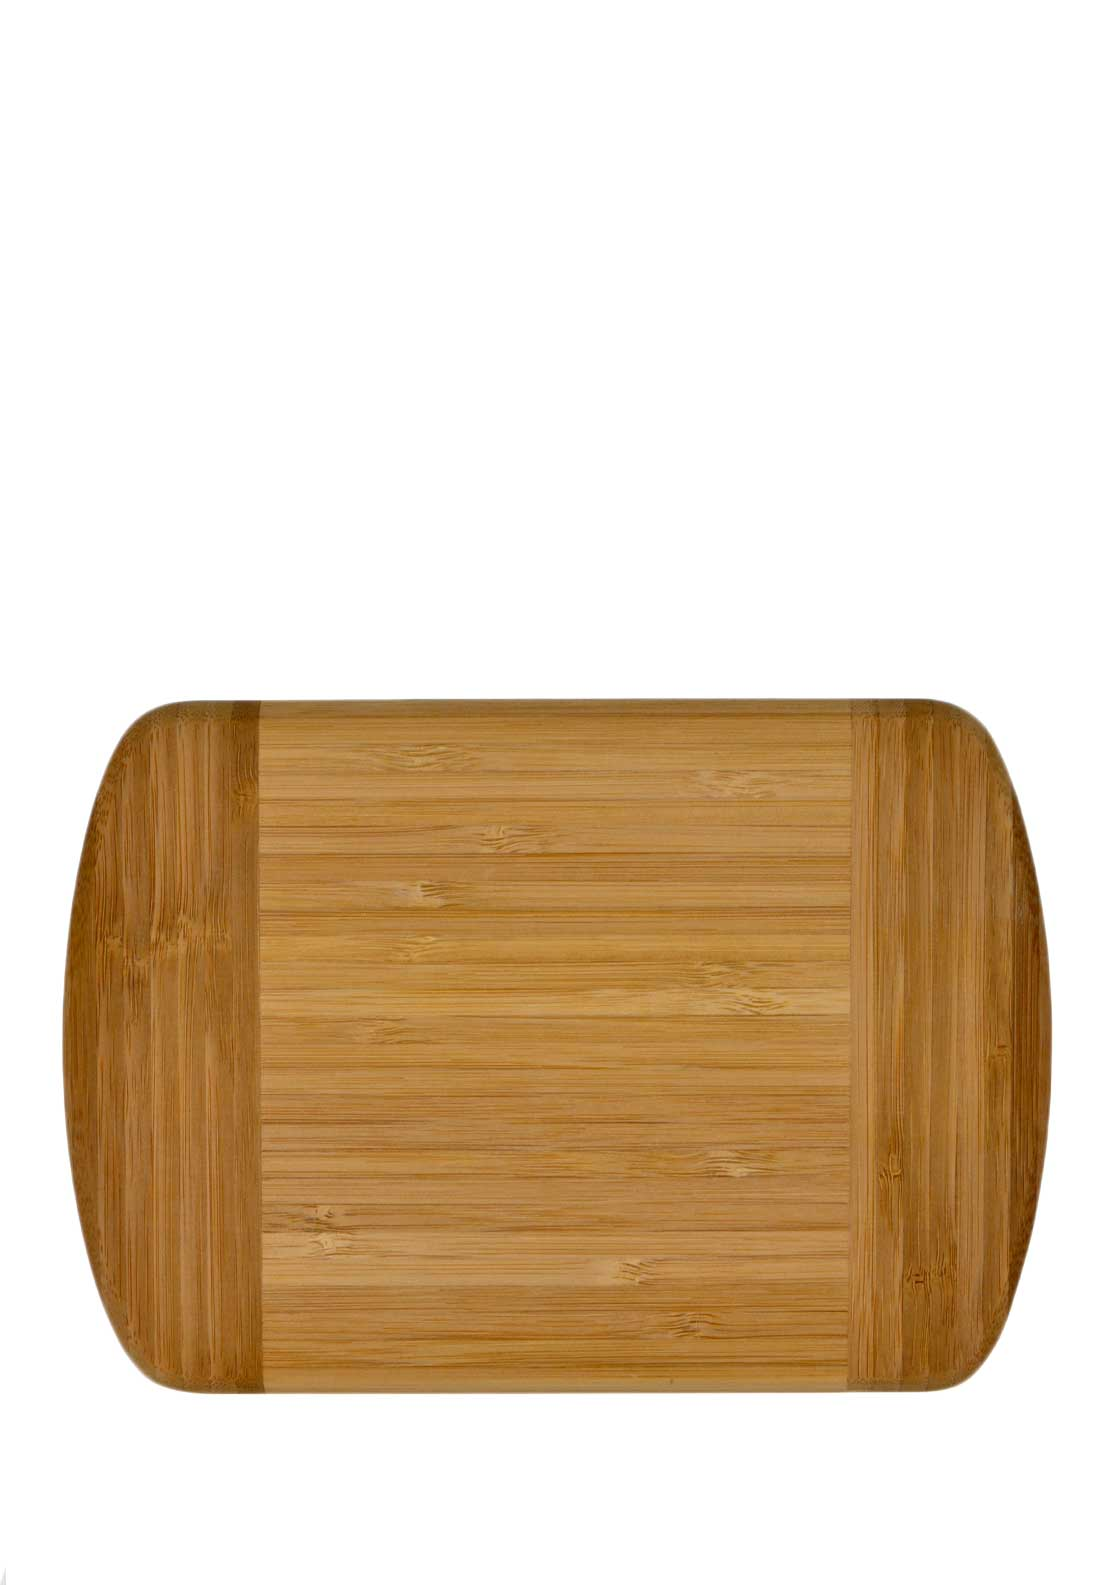 Occasion Bamboo Chopping board, Small